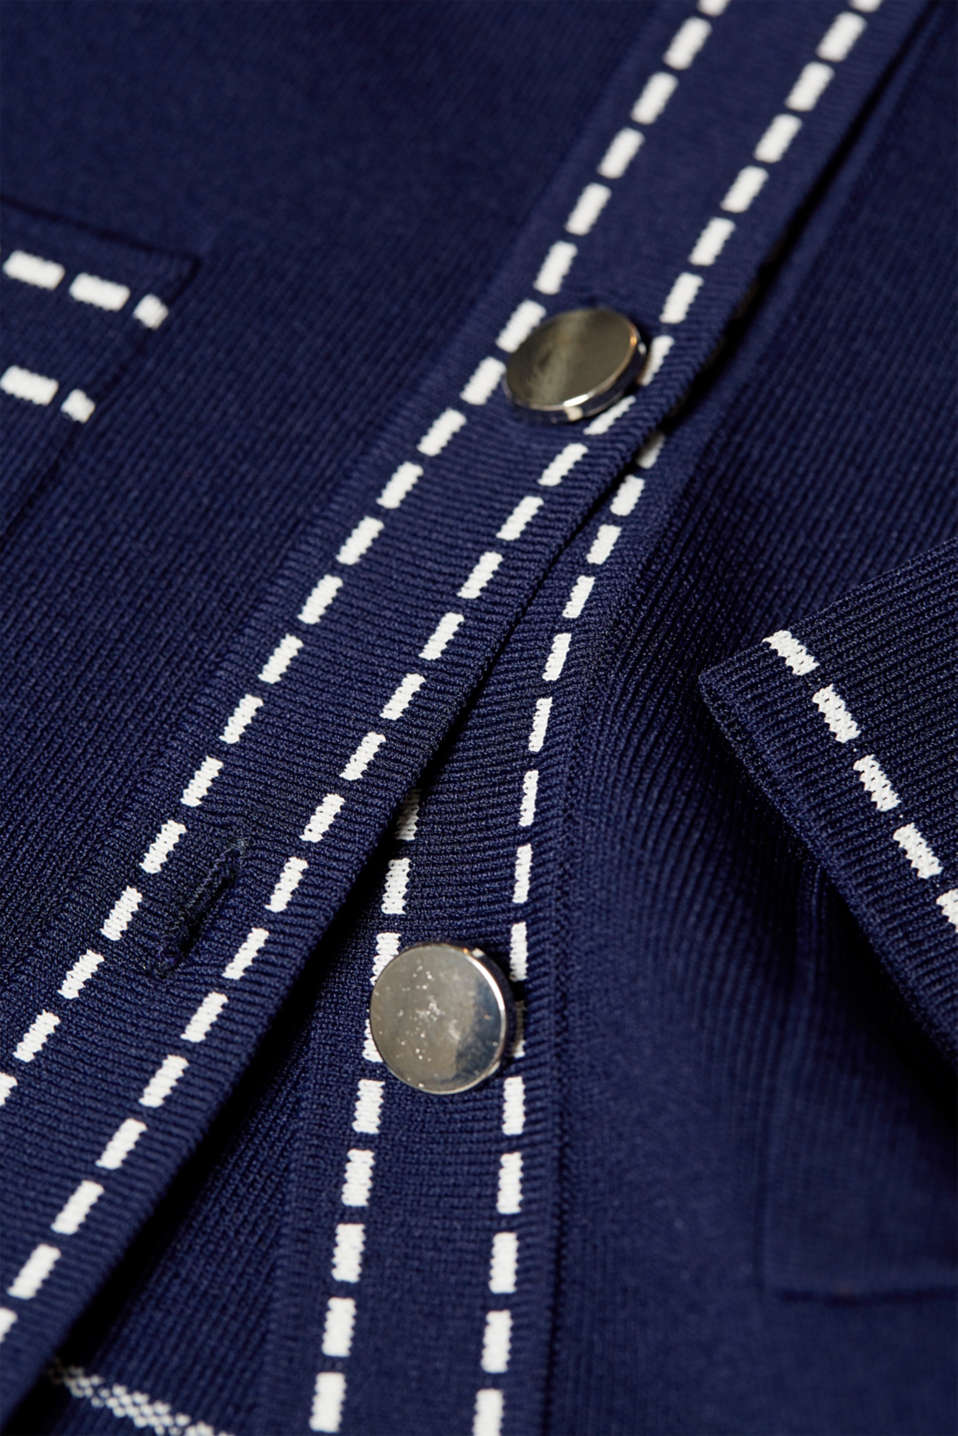 Cardigan with contrasting details, NAVY, detail image number 5